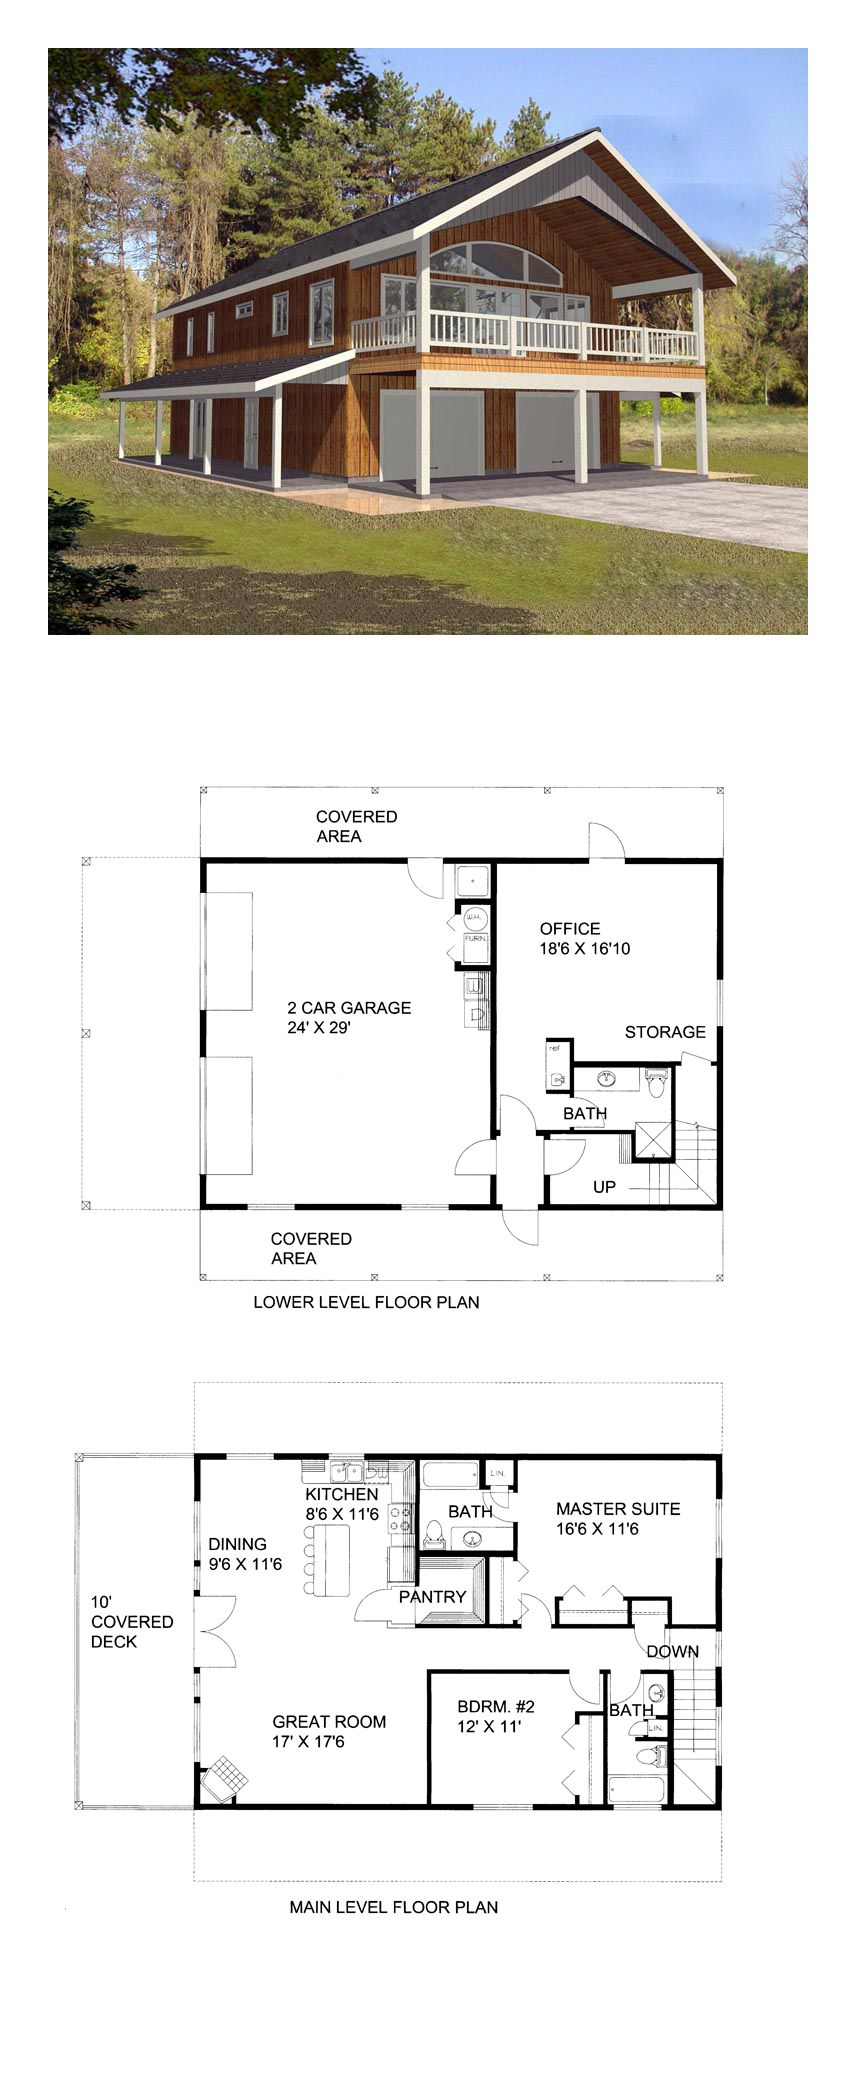 Garage apartment plan 85372 total living area 1901 sq for 1 bedroom garage apartment